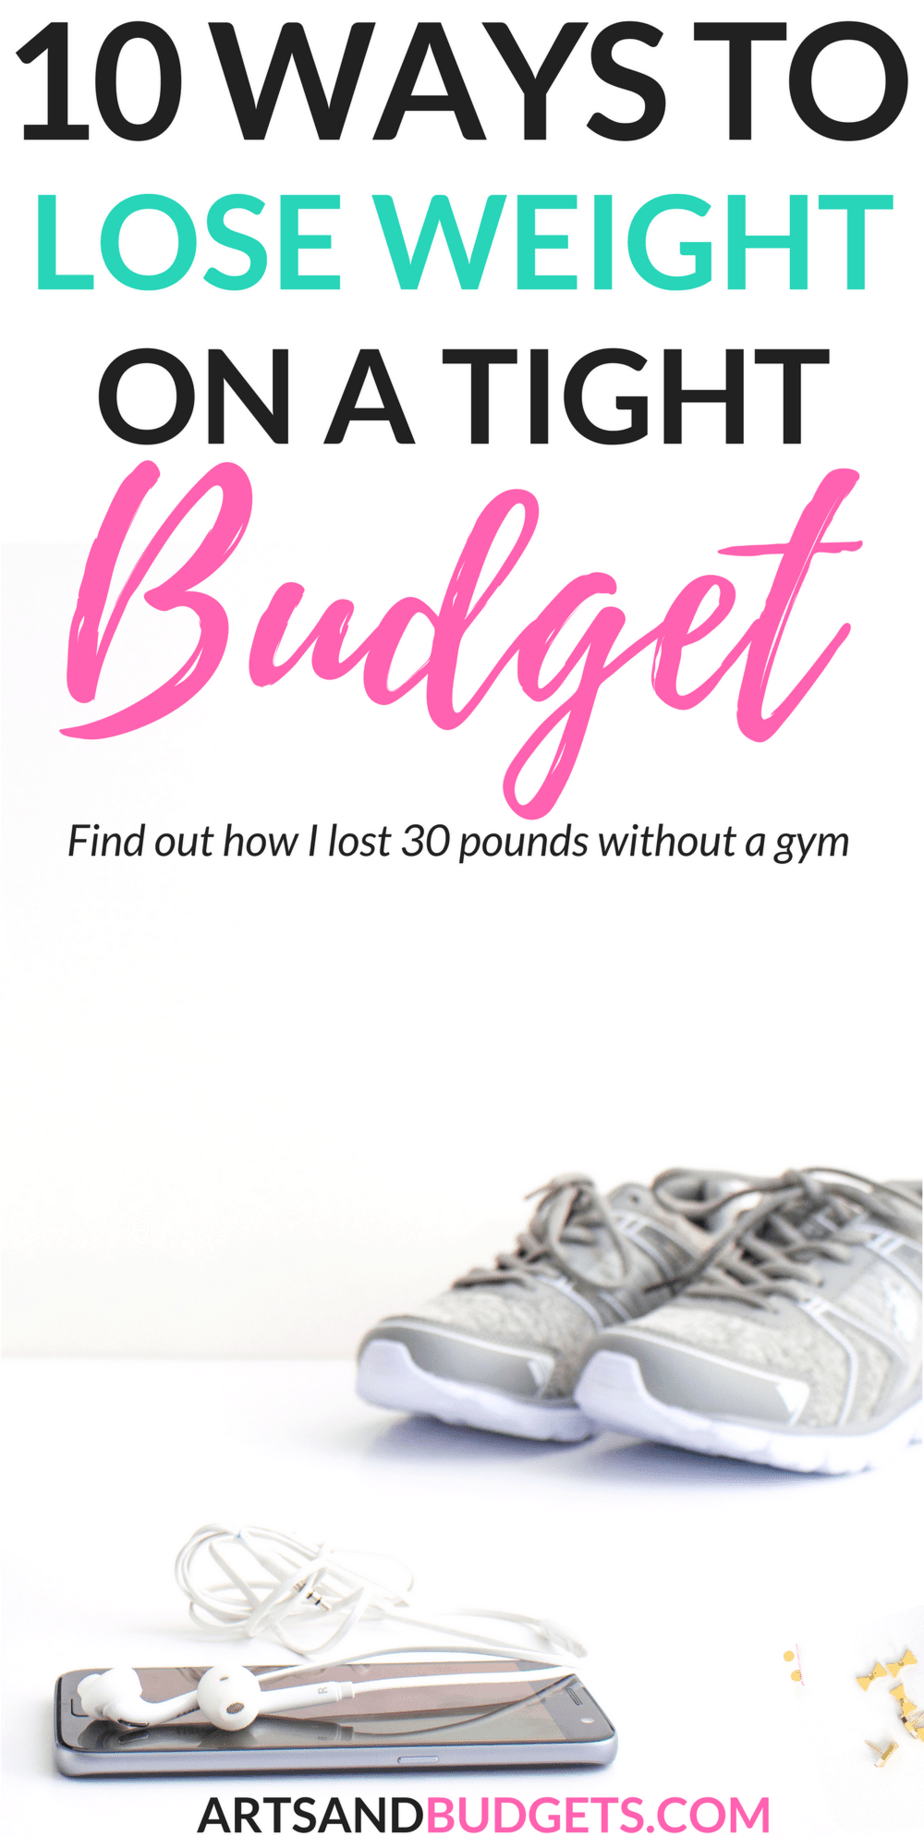 How to lose weight on a tight budget fast